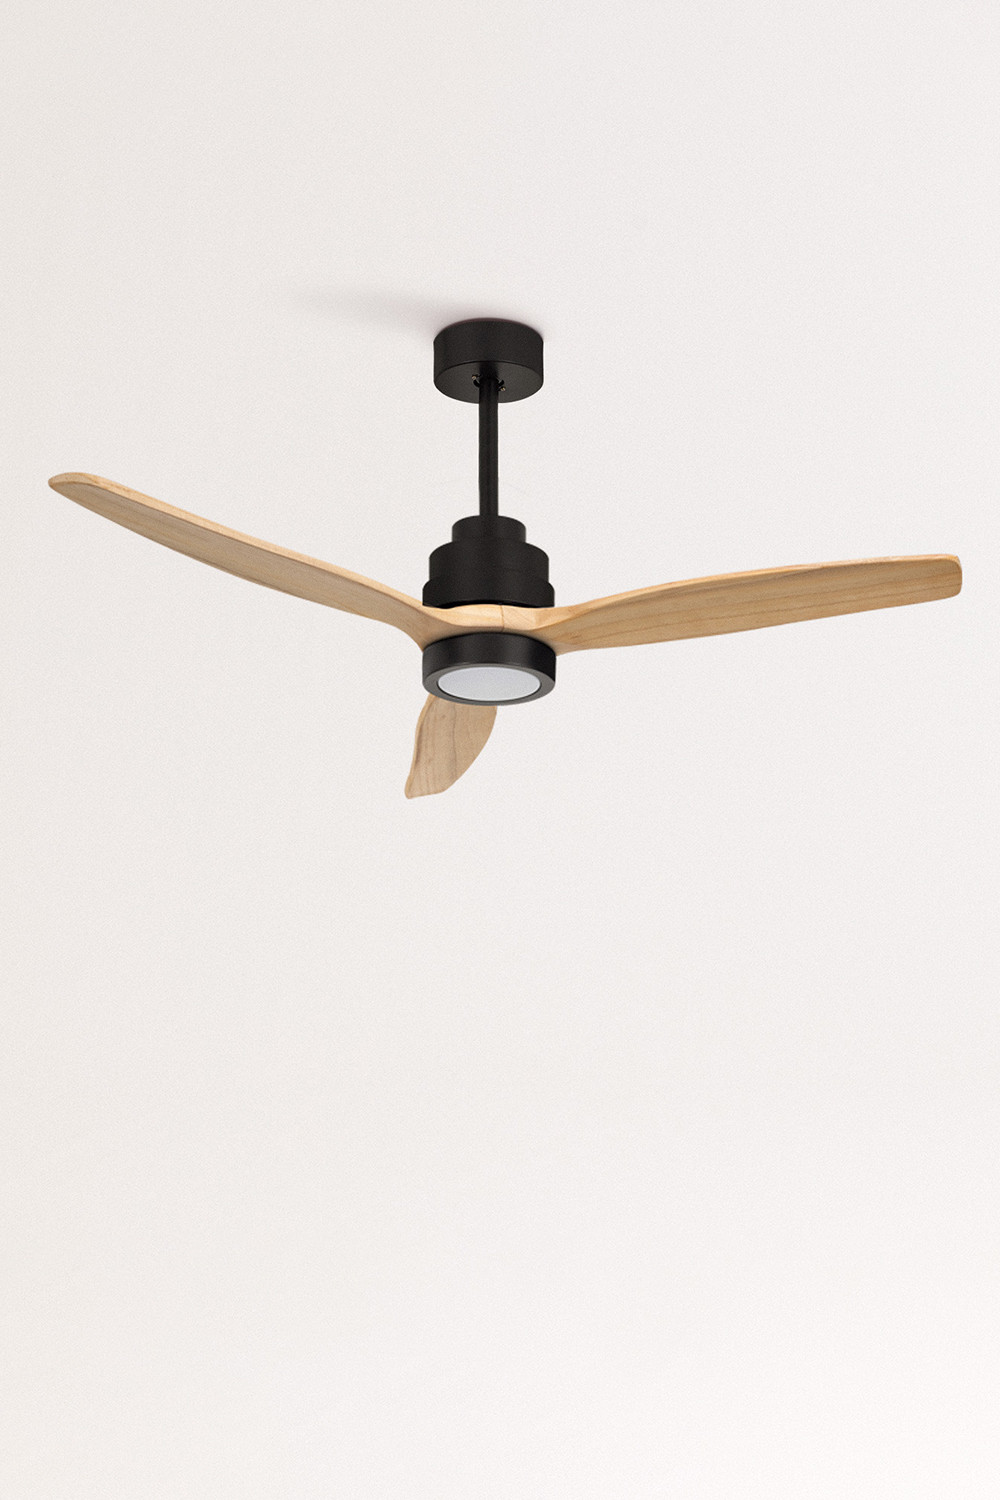 WINDSTYLANCE DC BLACK - Ceiling Fan with Light - Create, gallery image 1